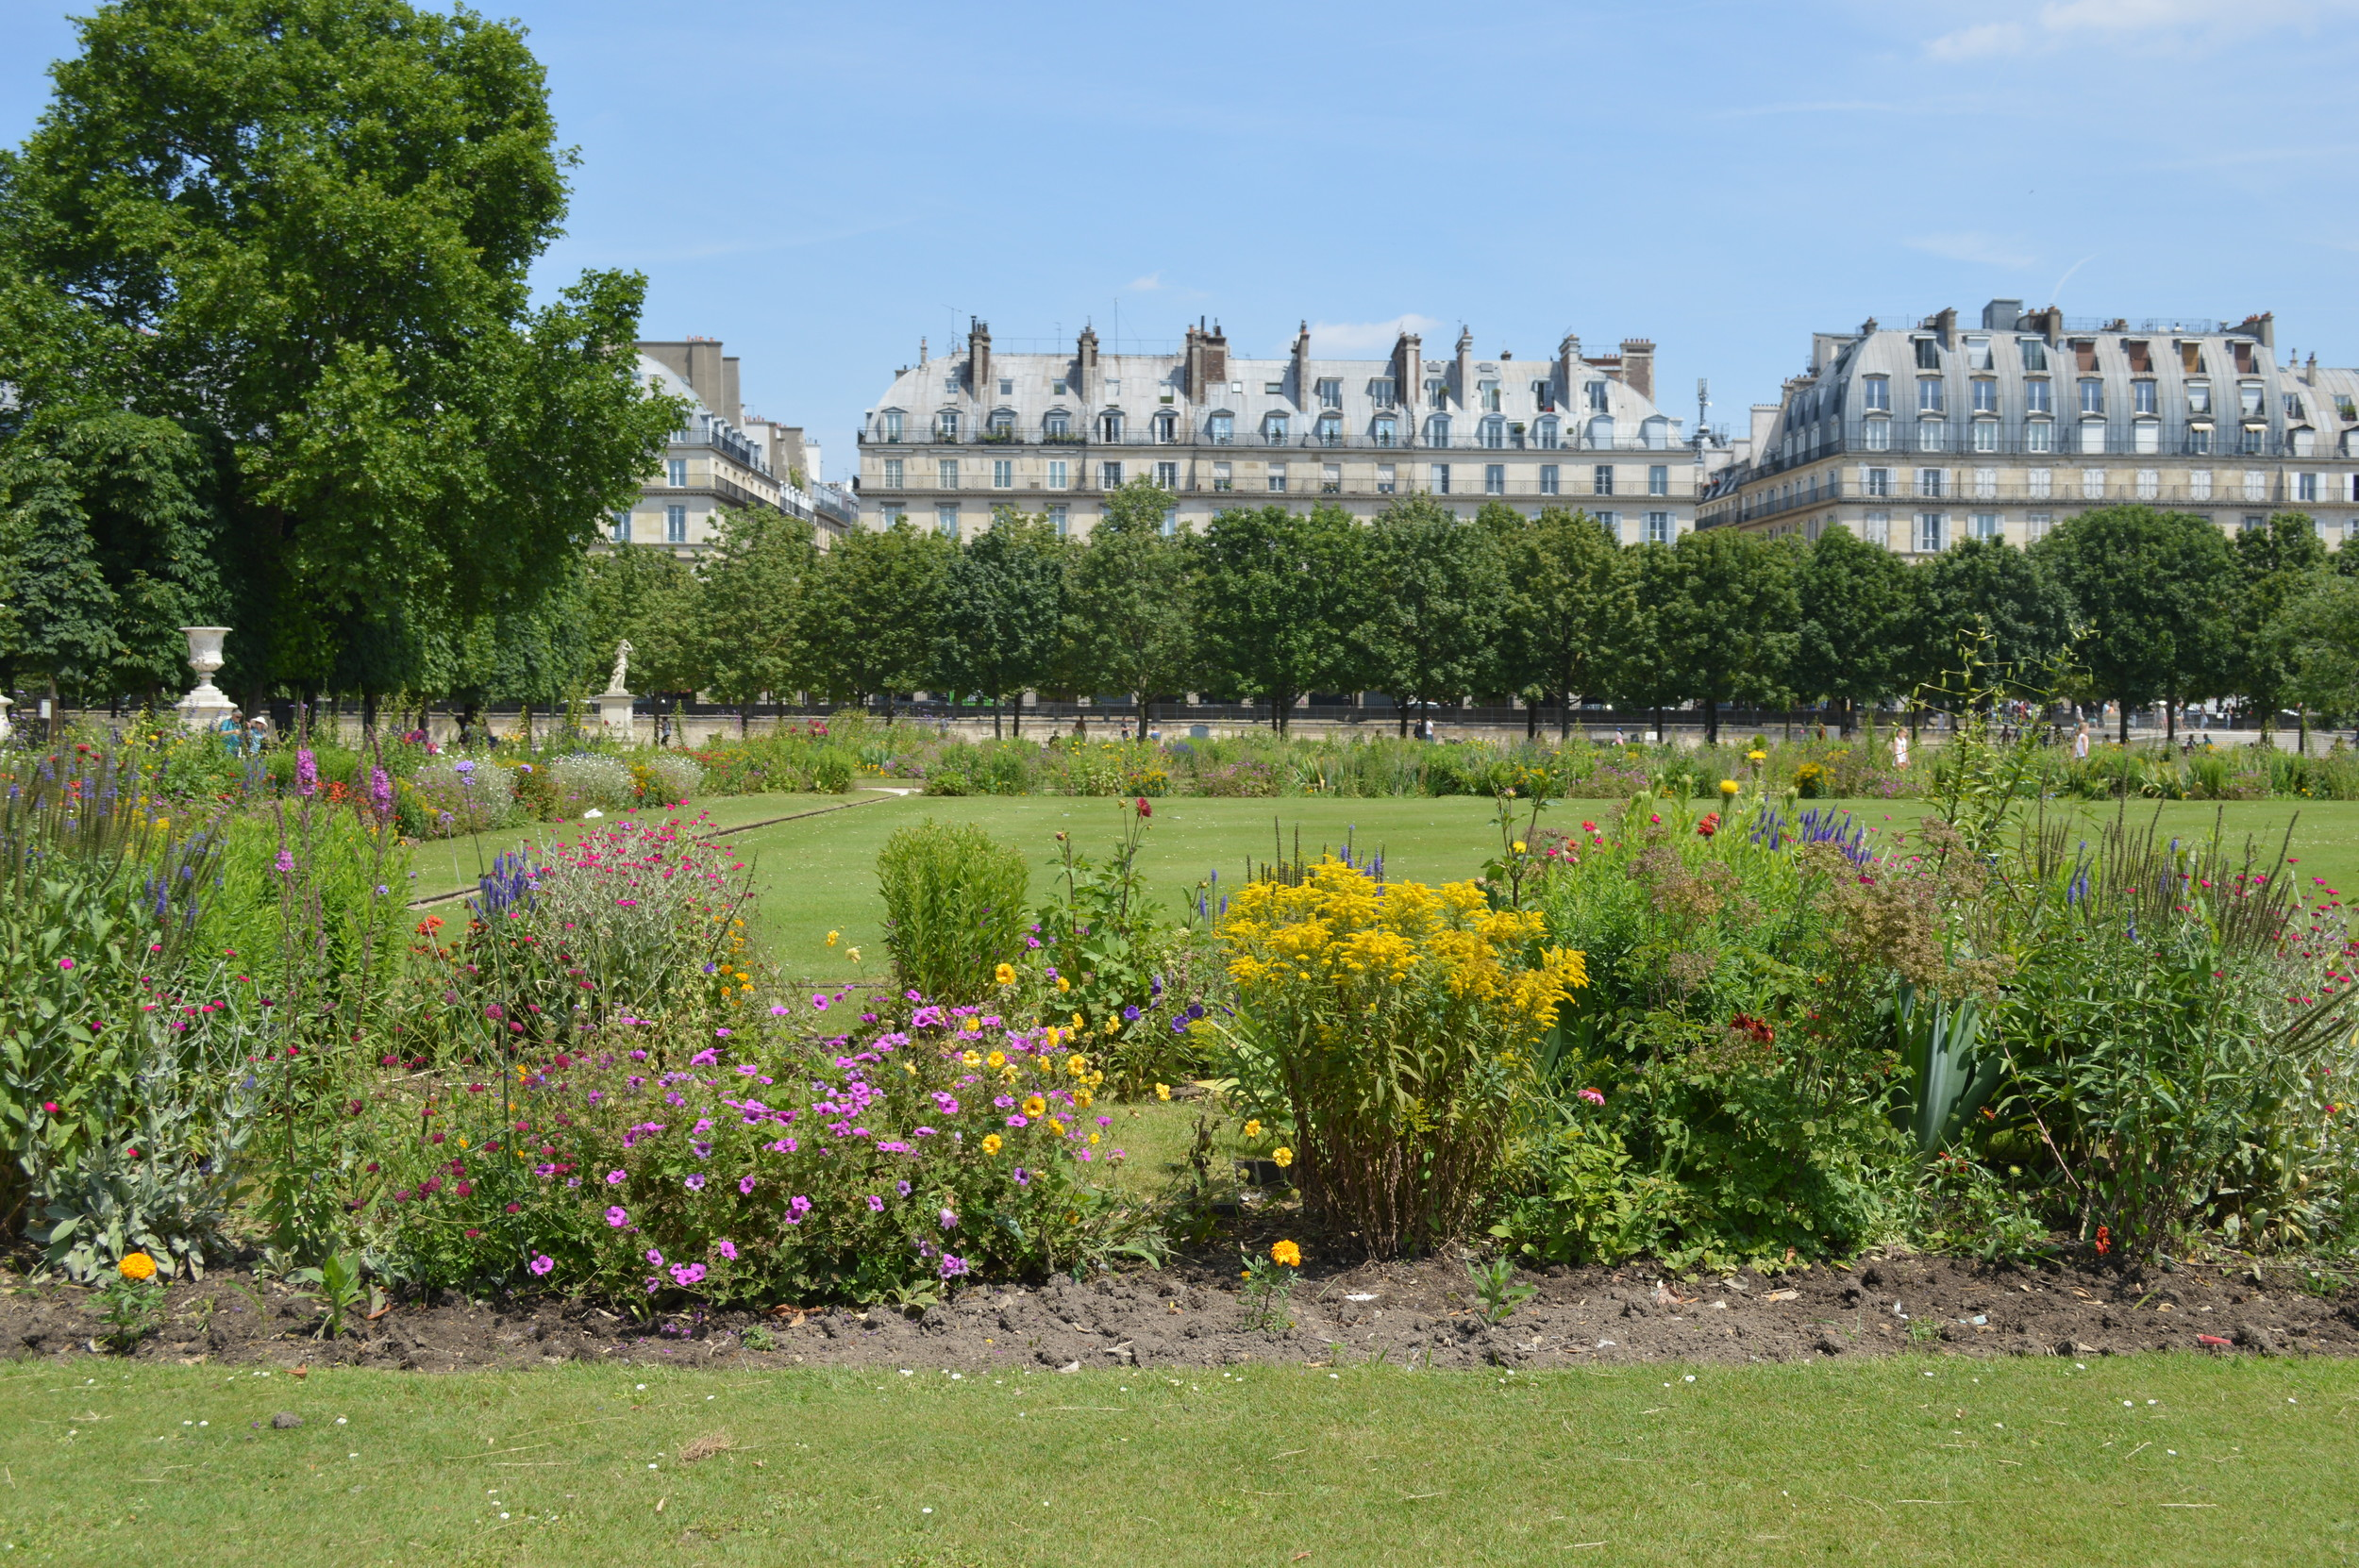 Gardens in Paris, France - this article lists 10 amazing things you must not miss in Paris! Have you planned your trip yet? / goseekexplore.com